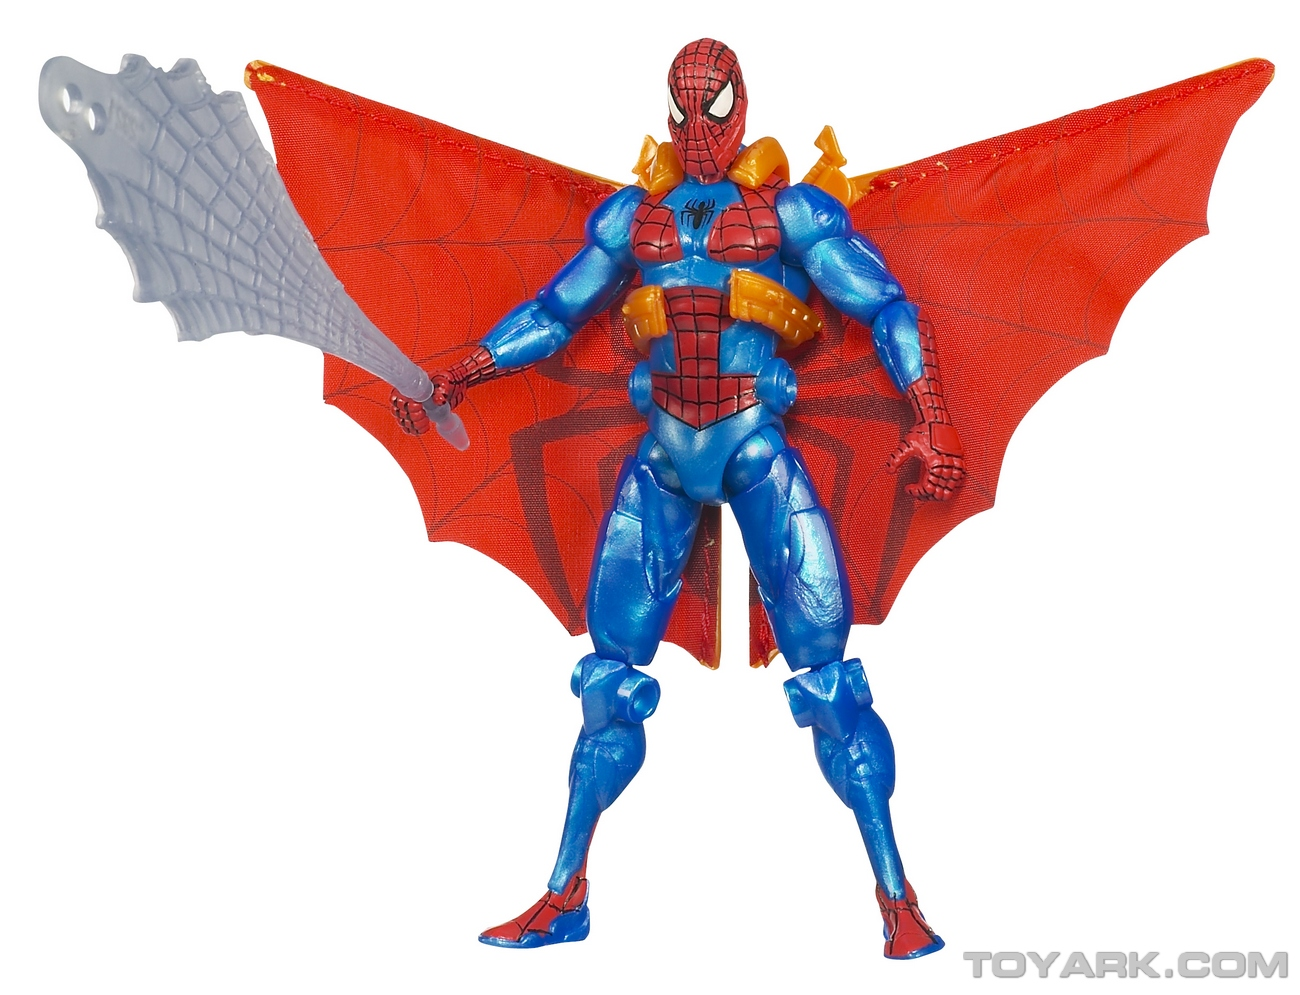 Spider Man Toys : Official photos for spider man toys from toy fair